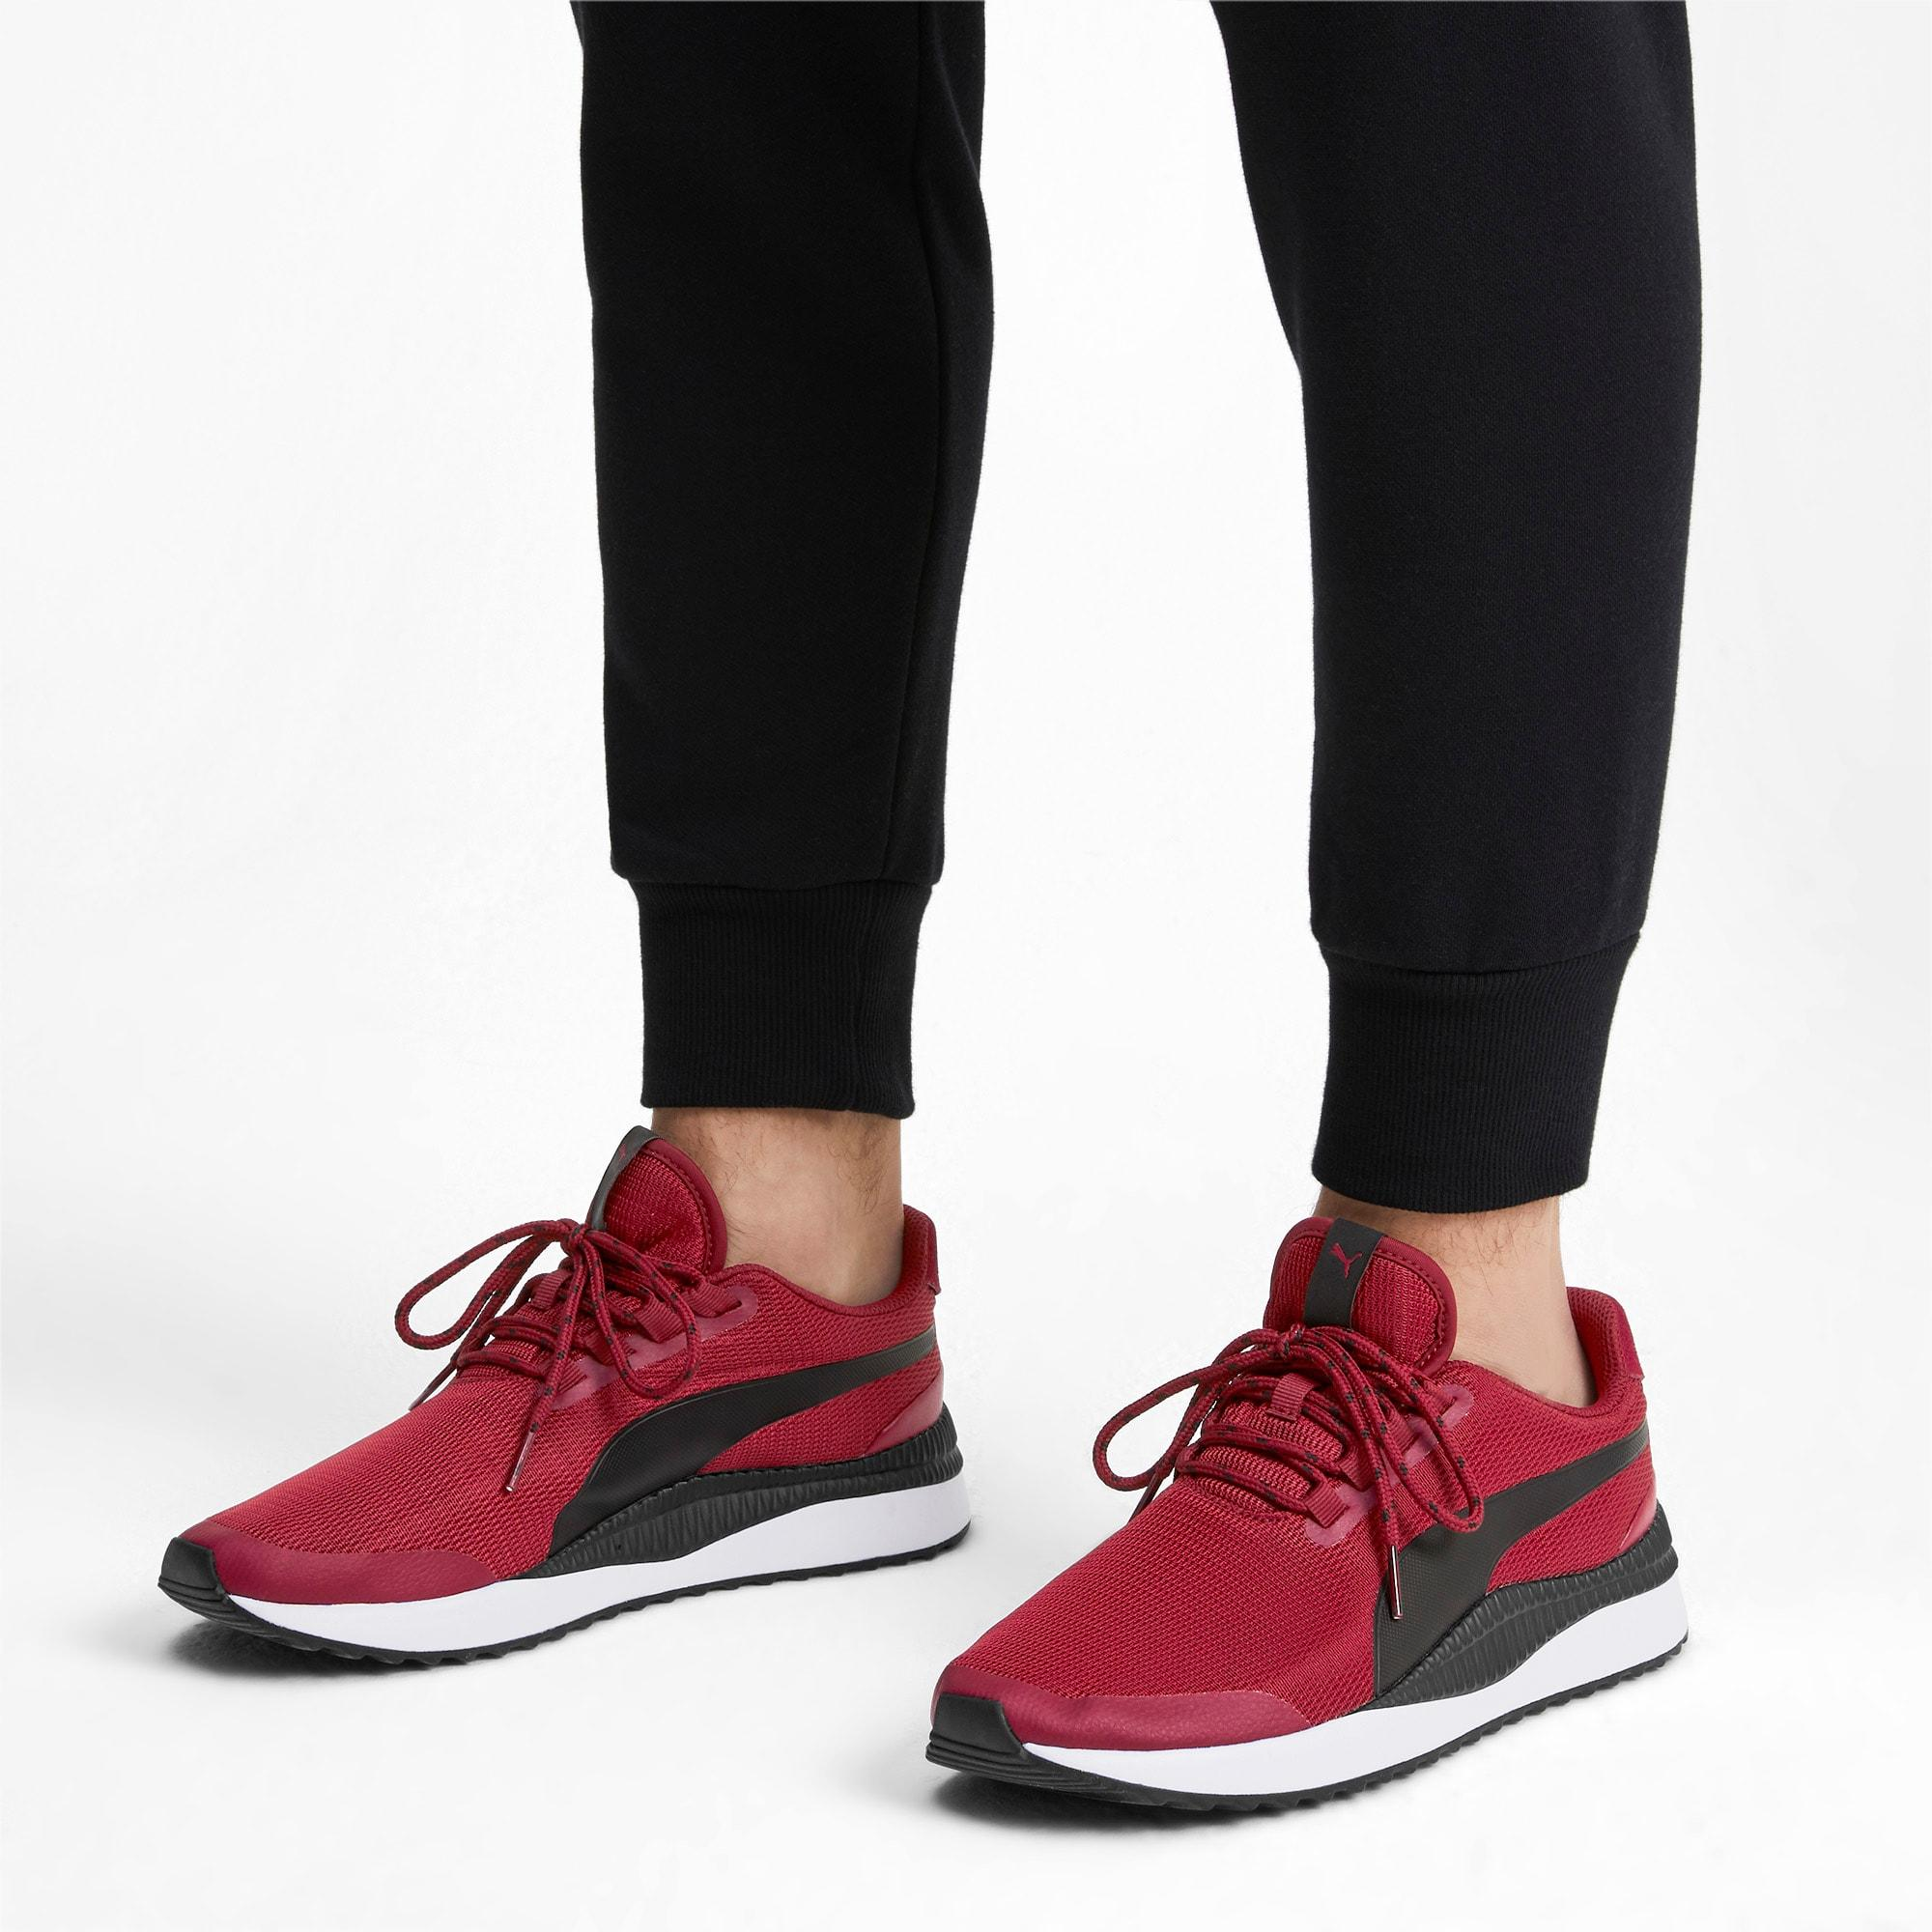 PUMA Lace Pacer Next Fs Men's Sneakers in Red for Men - Lyst